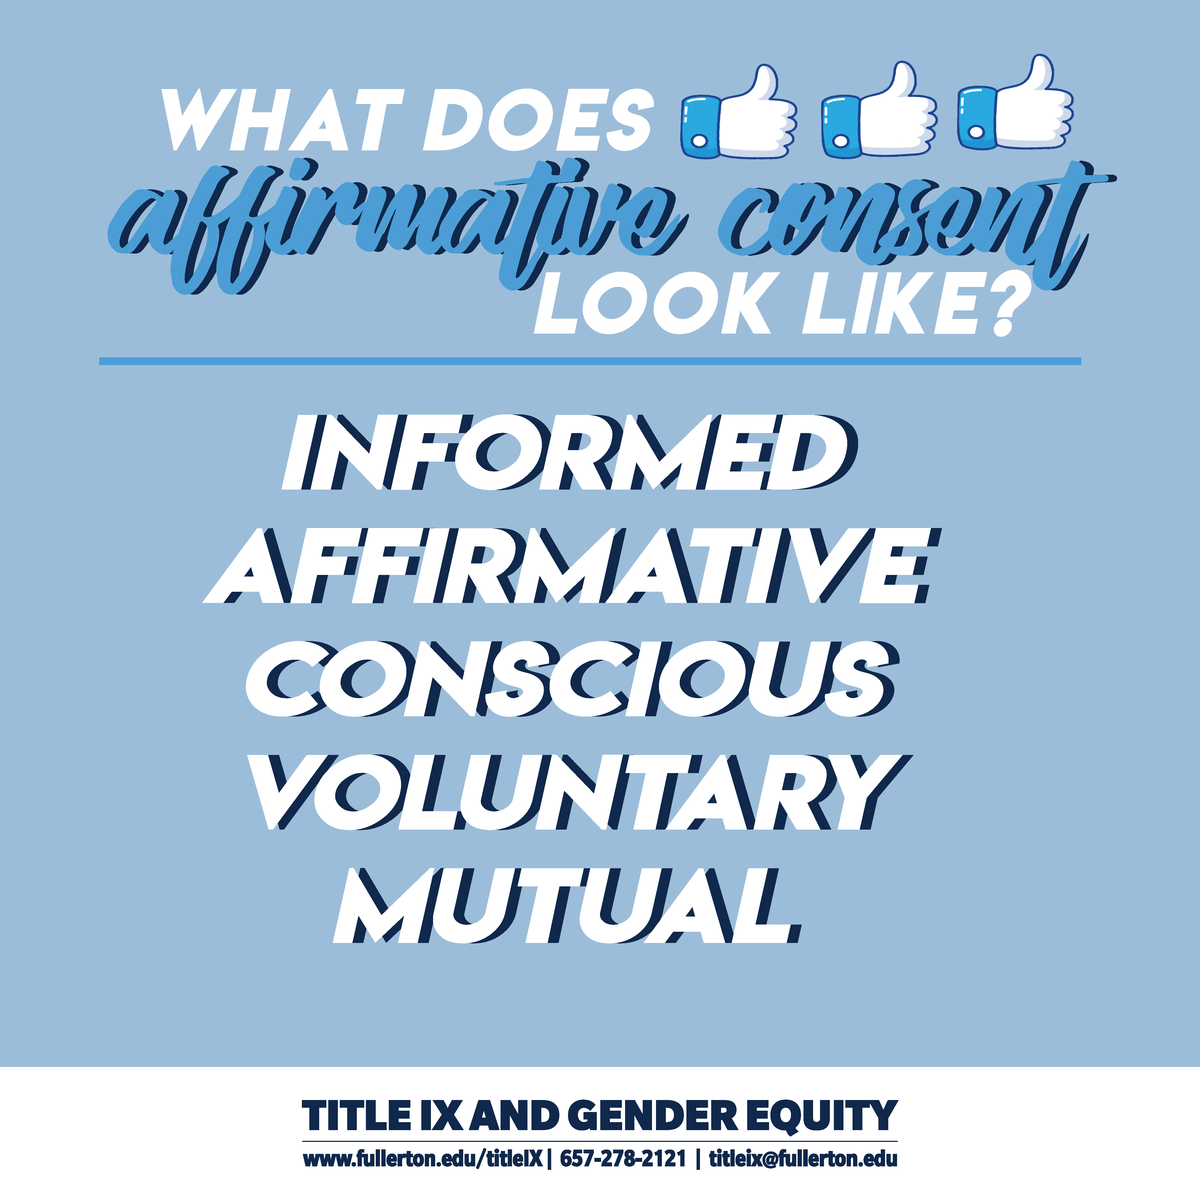 What does Affirmative Consent look like?  Informed, affirmative, conscious, voluntary, mutual